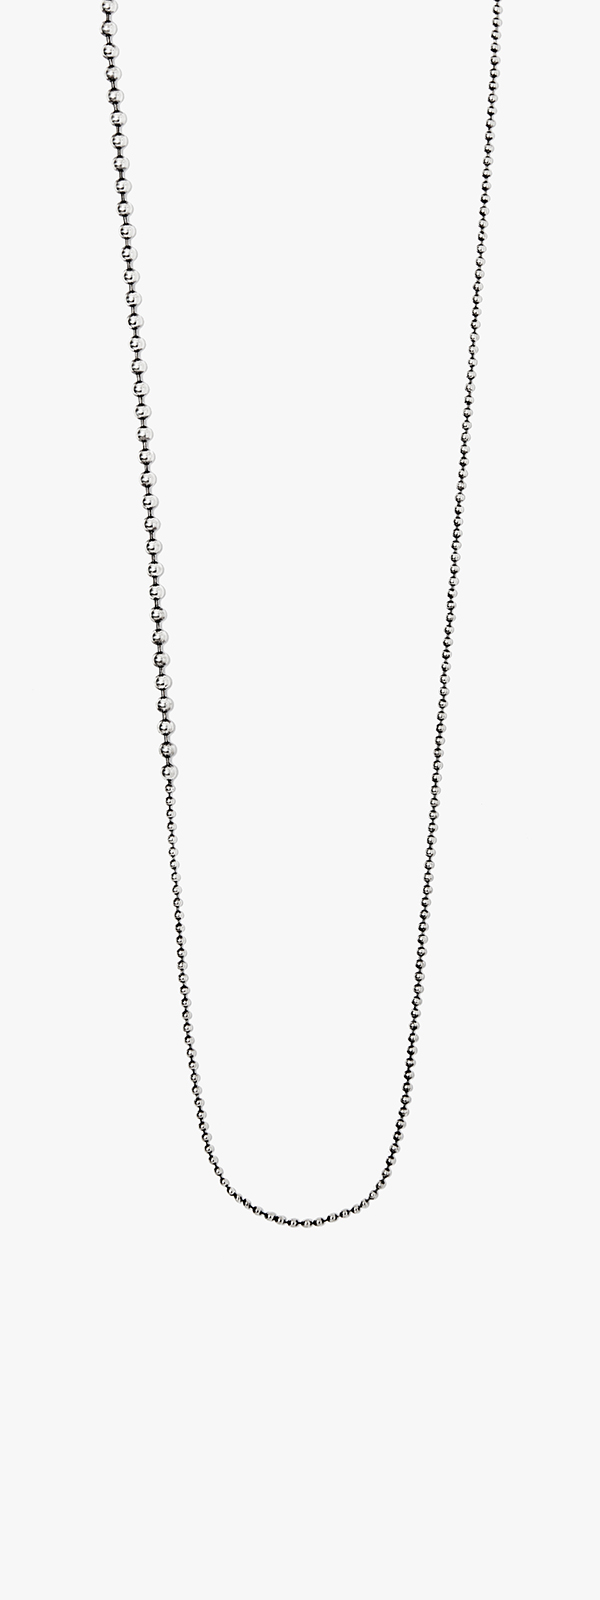 Image of Medium to Micro Ball Chain Necklace